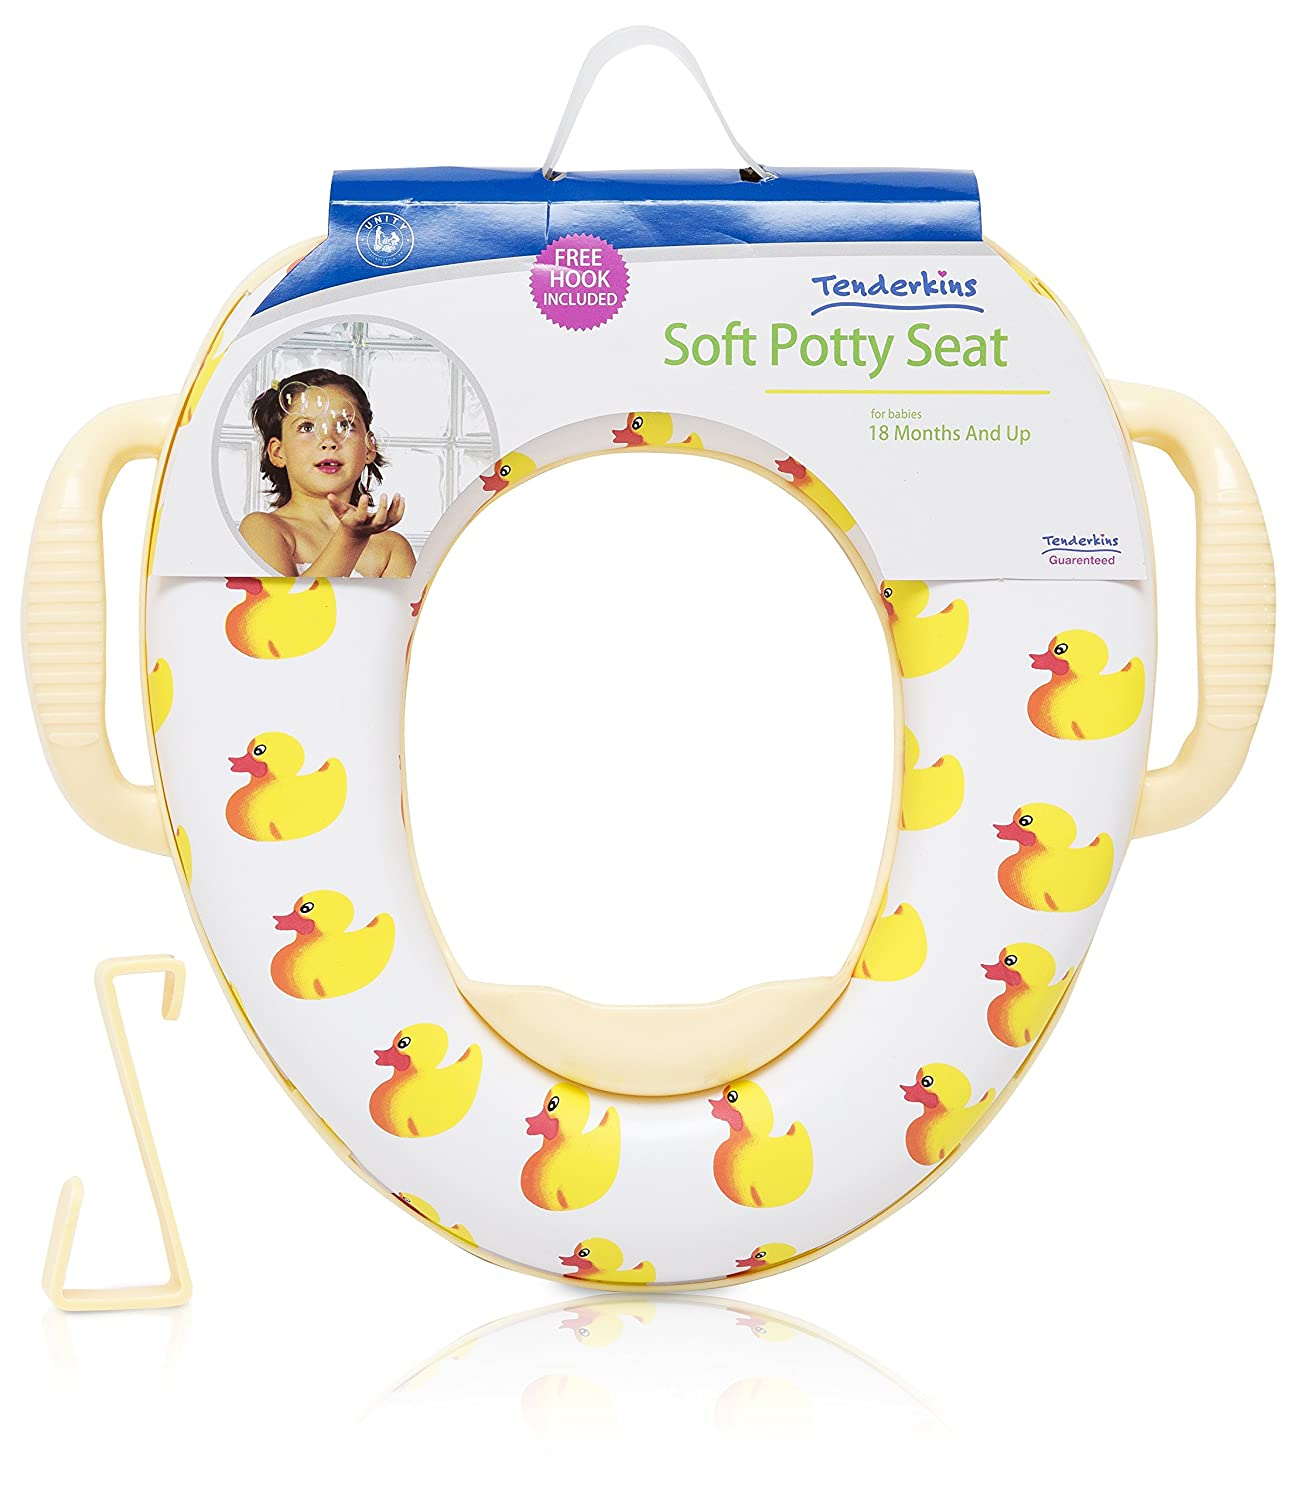 Tenderkins Soft Potty Training Potty Seat with Handles & Splash Guard - FREE HOOK INCLUDED - by Unity (Rubber Ducky) Unity-Frankford